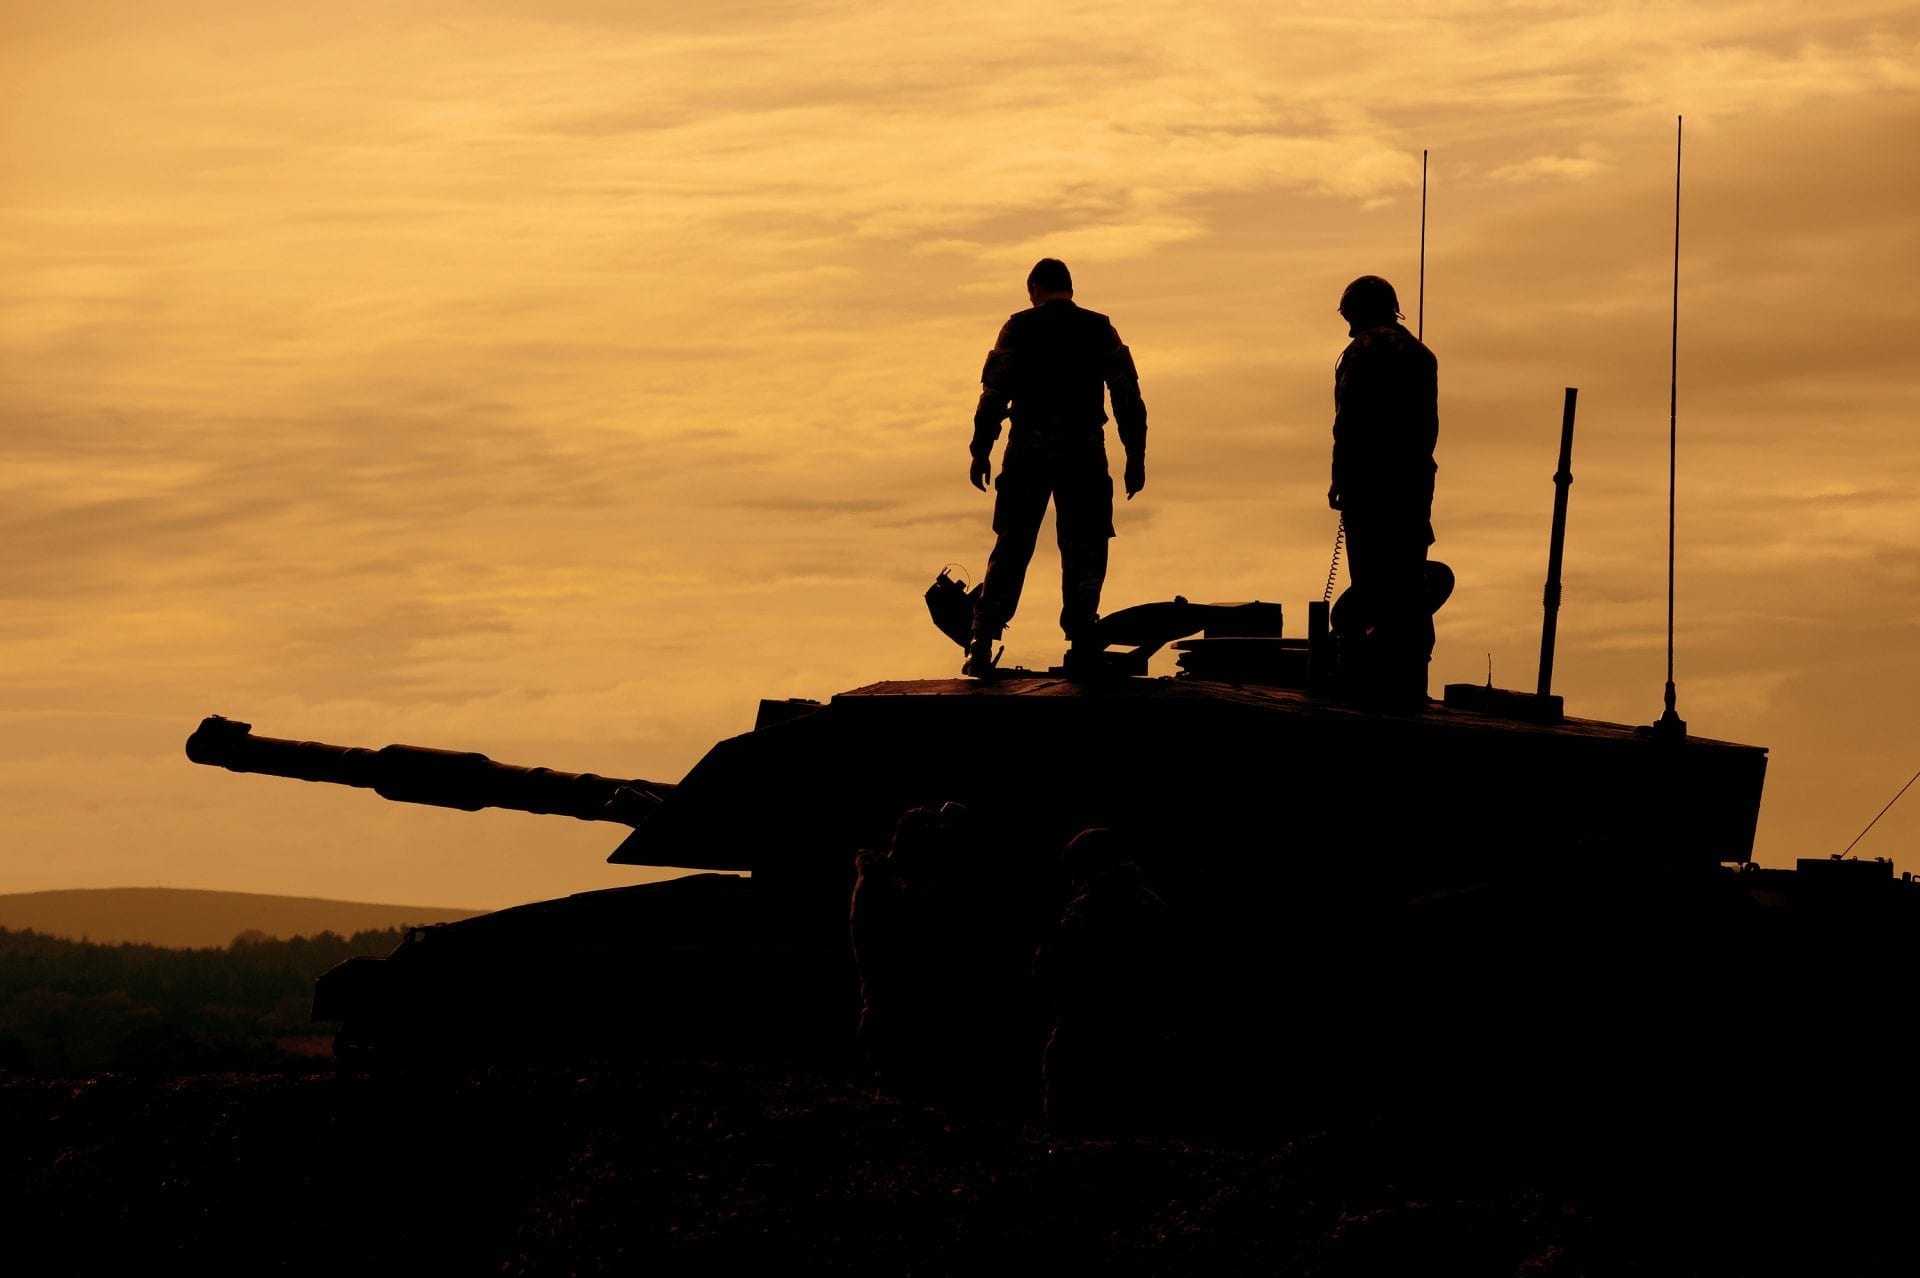 Reservist Soldiers on a Challenger 2 Tank